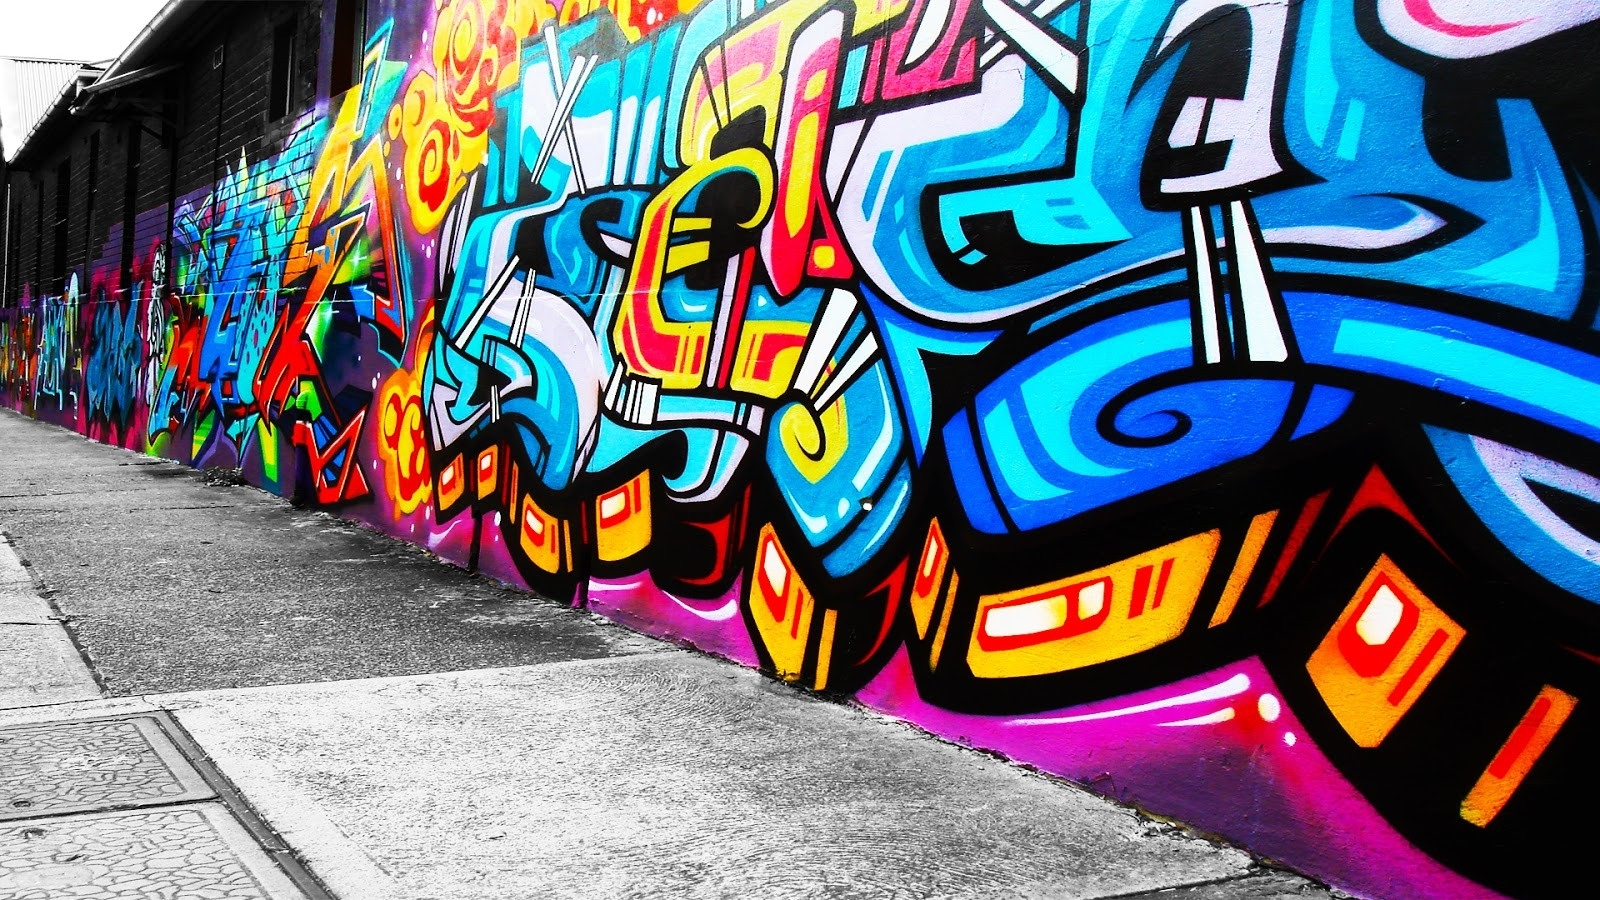 Trendy Hip Hop Wall Art New Street Hip Hop Art Backgrounds Wall Art Ideas For Hip Hop Wall Art (View 12 of 15)